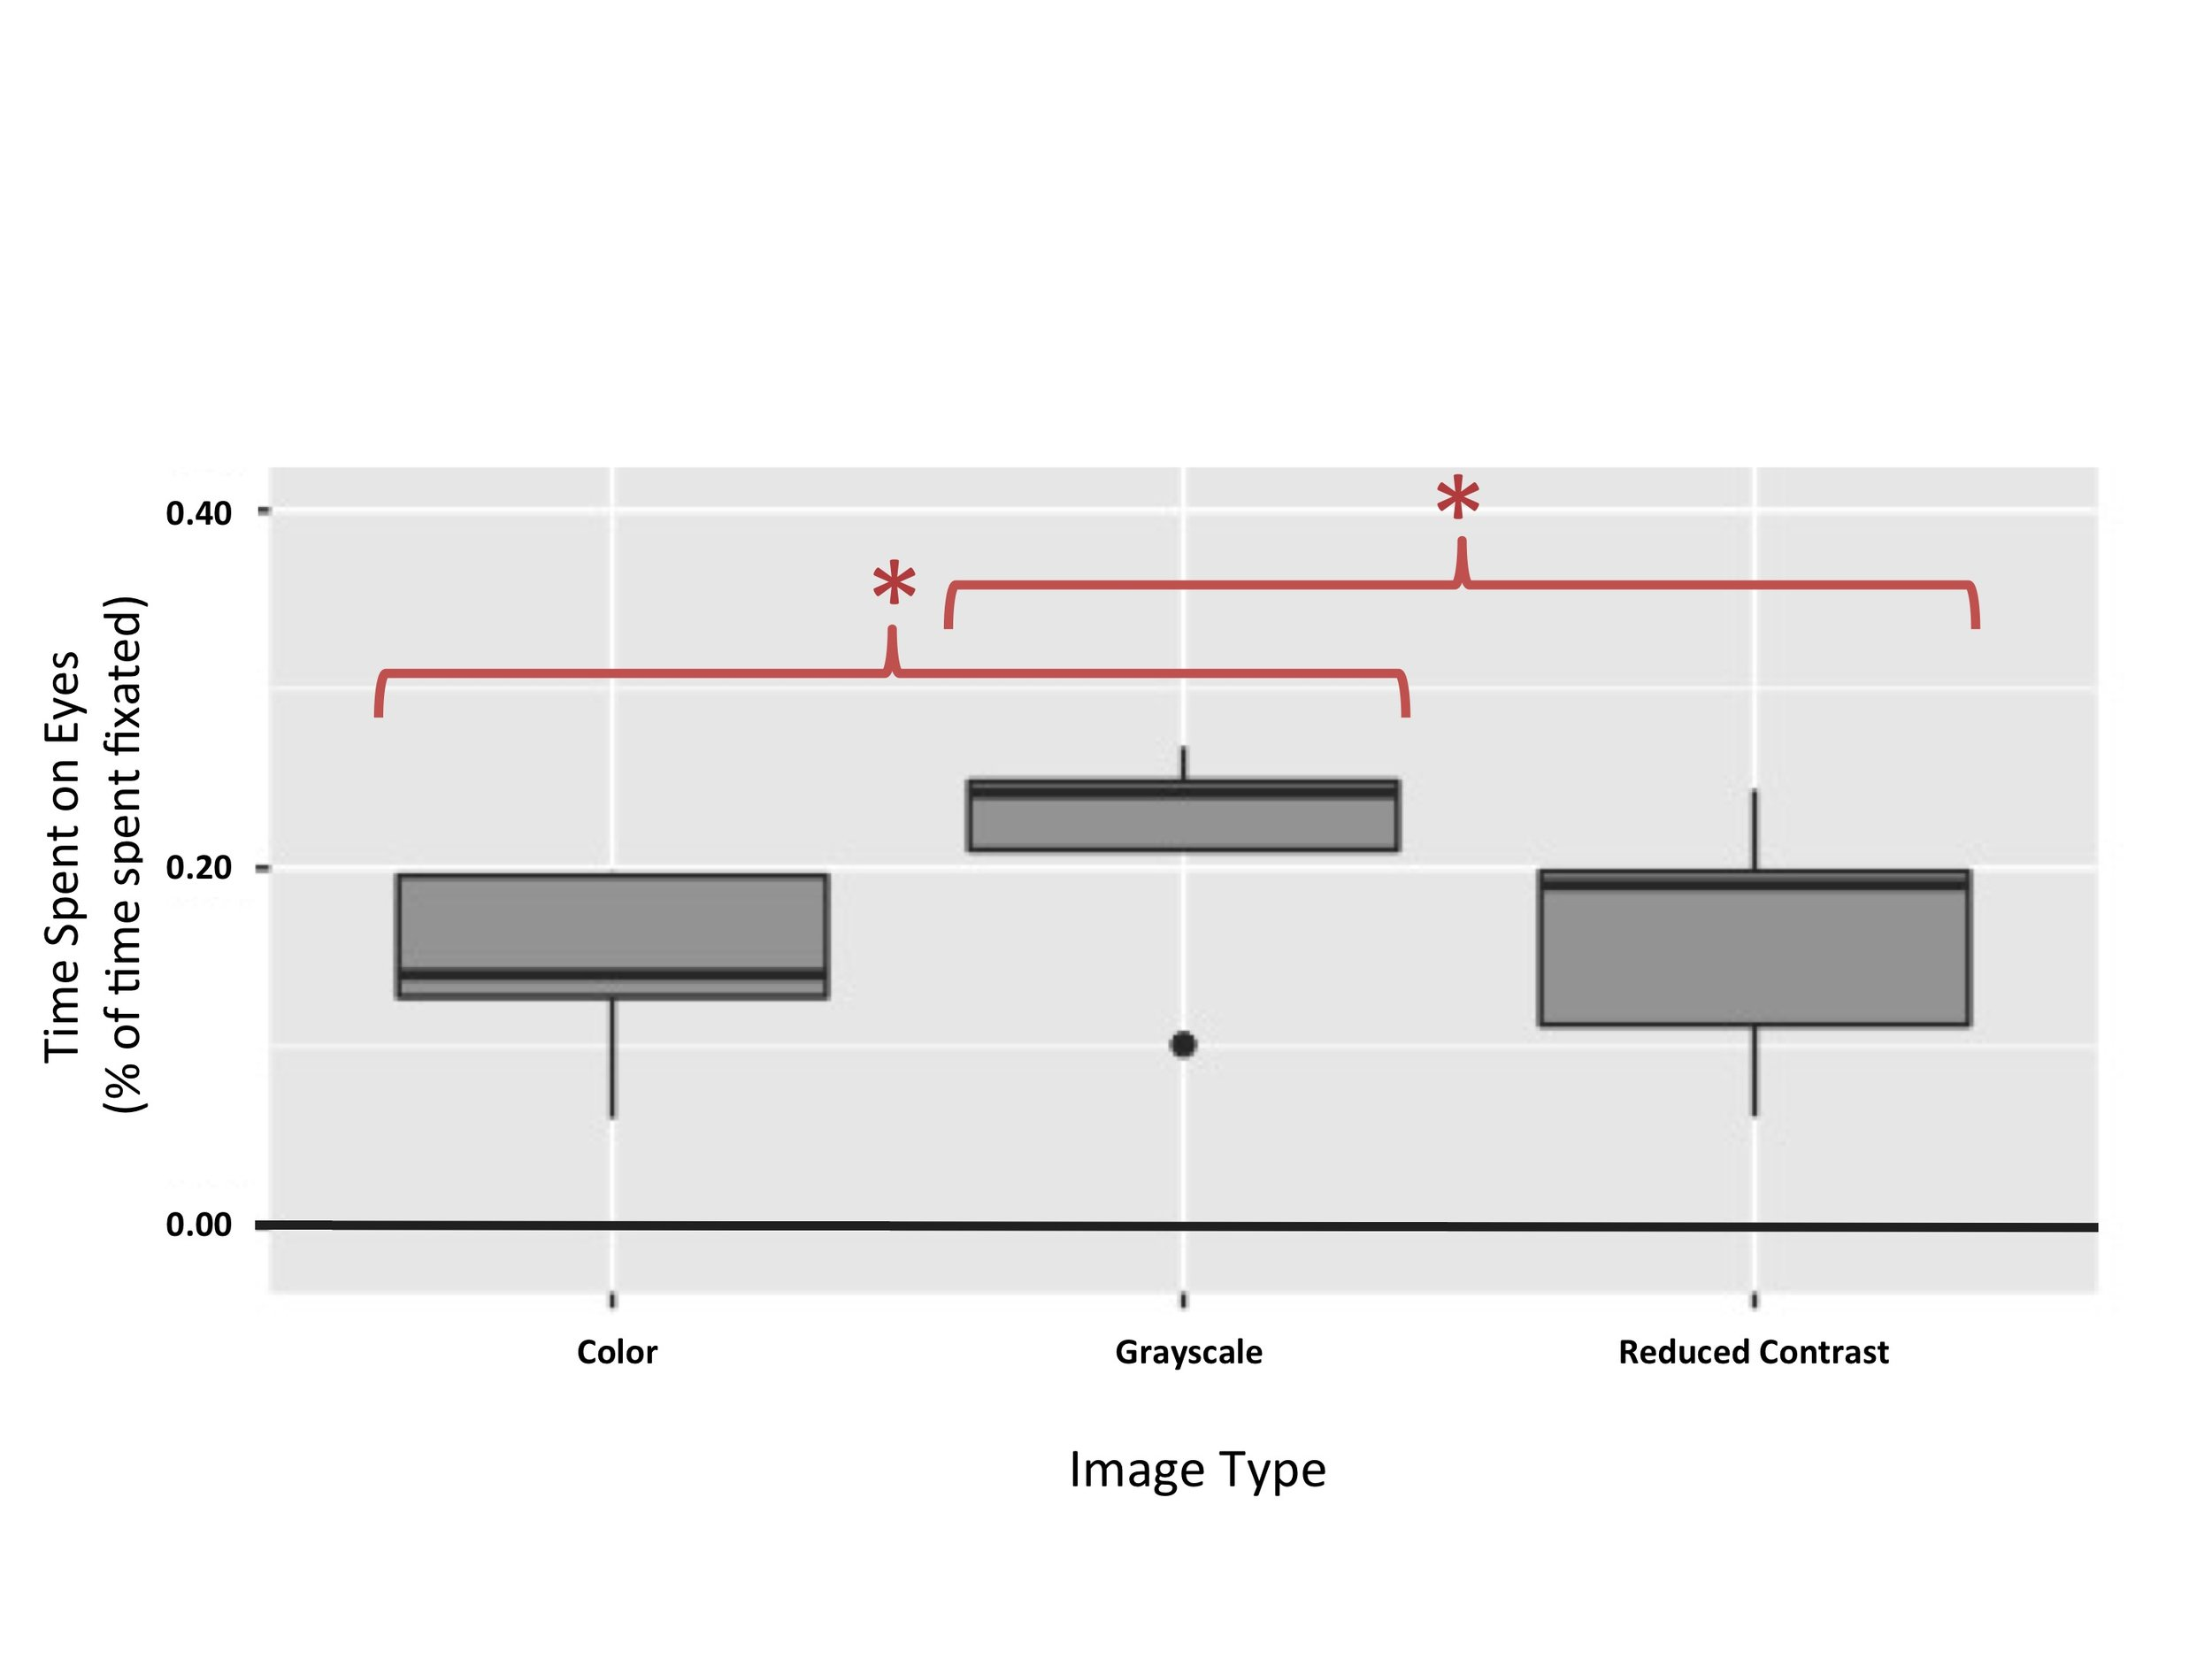 Figure 4. Time spent on eyes in BAPQ+ participants.  This figure illustrates that effect of image category on time spent on eyes was significant for subjects with an autism phenotype ( p  = 0.00937). Subjects with an autism phenotype spent more time on the eyes of grayscale images (Mean = 0.21, SD = 0.07) than on the eyes of color images (Mean = 0.14, SD = 0.06) or images under a contrast filter (Mean = 0.16, SD = 0.07).